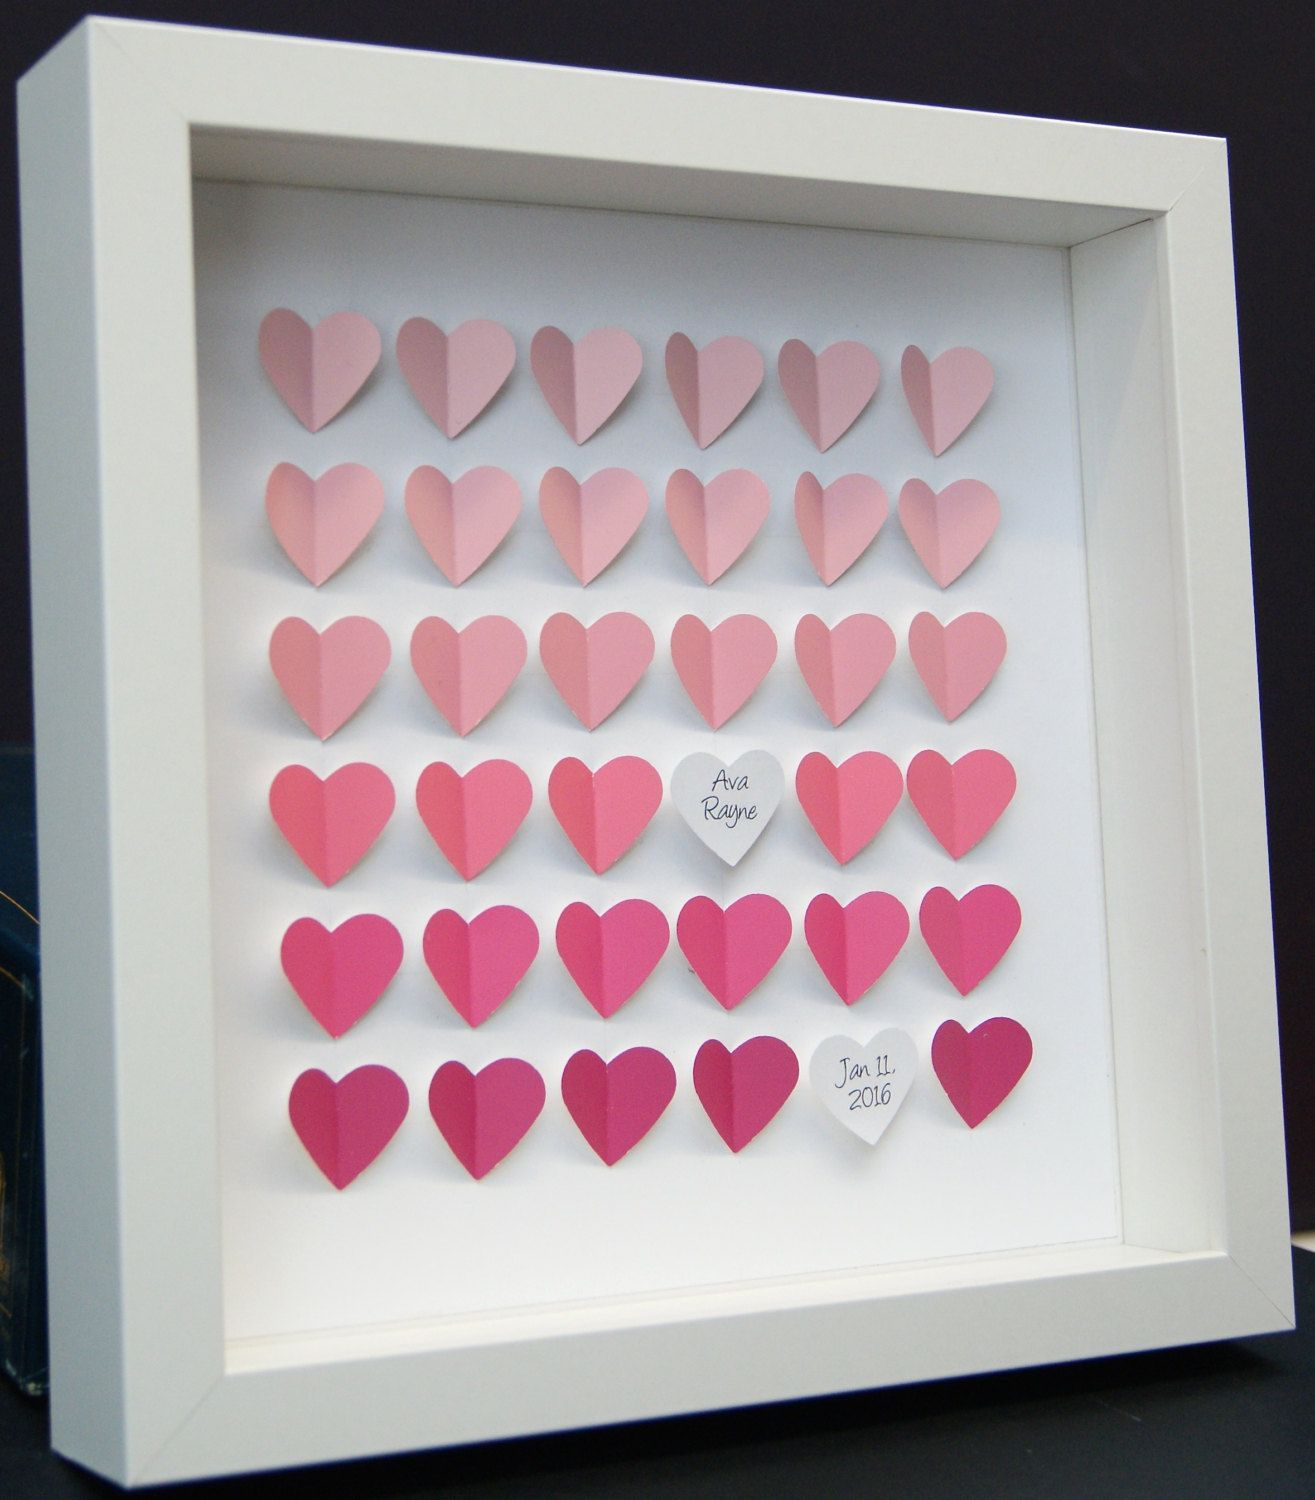 Personalized Name Frame of Ombre Pink Hearts, Baby Girl Gift, Nursery Decor Wall Art, Paper Art#art #baby #decor #frame #gift #girl #hearts #nursery #ombre #paper #personalized #pink #wall